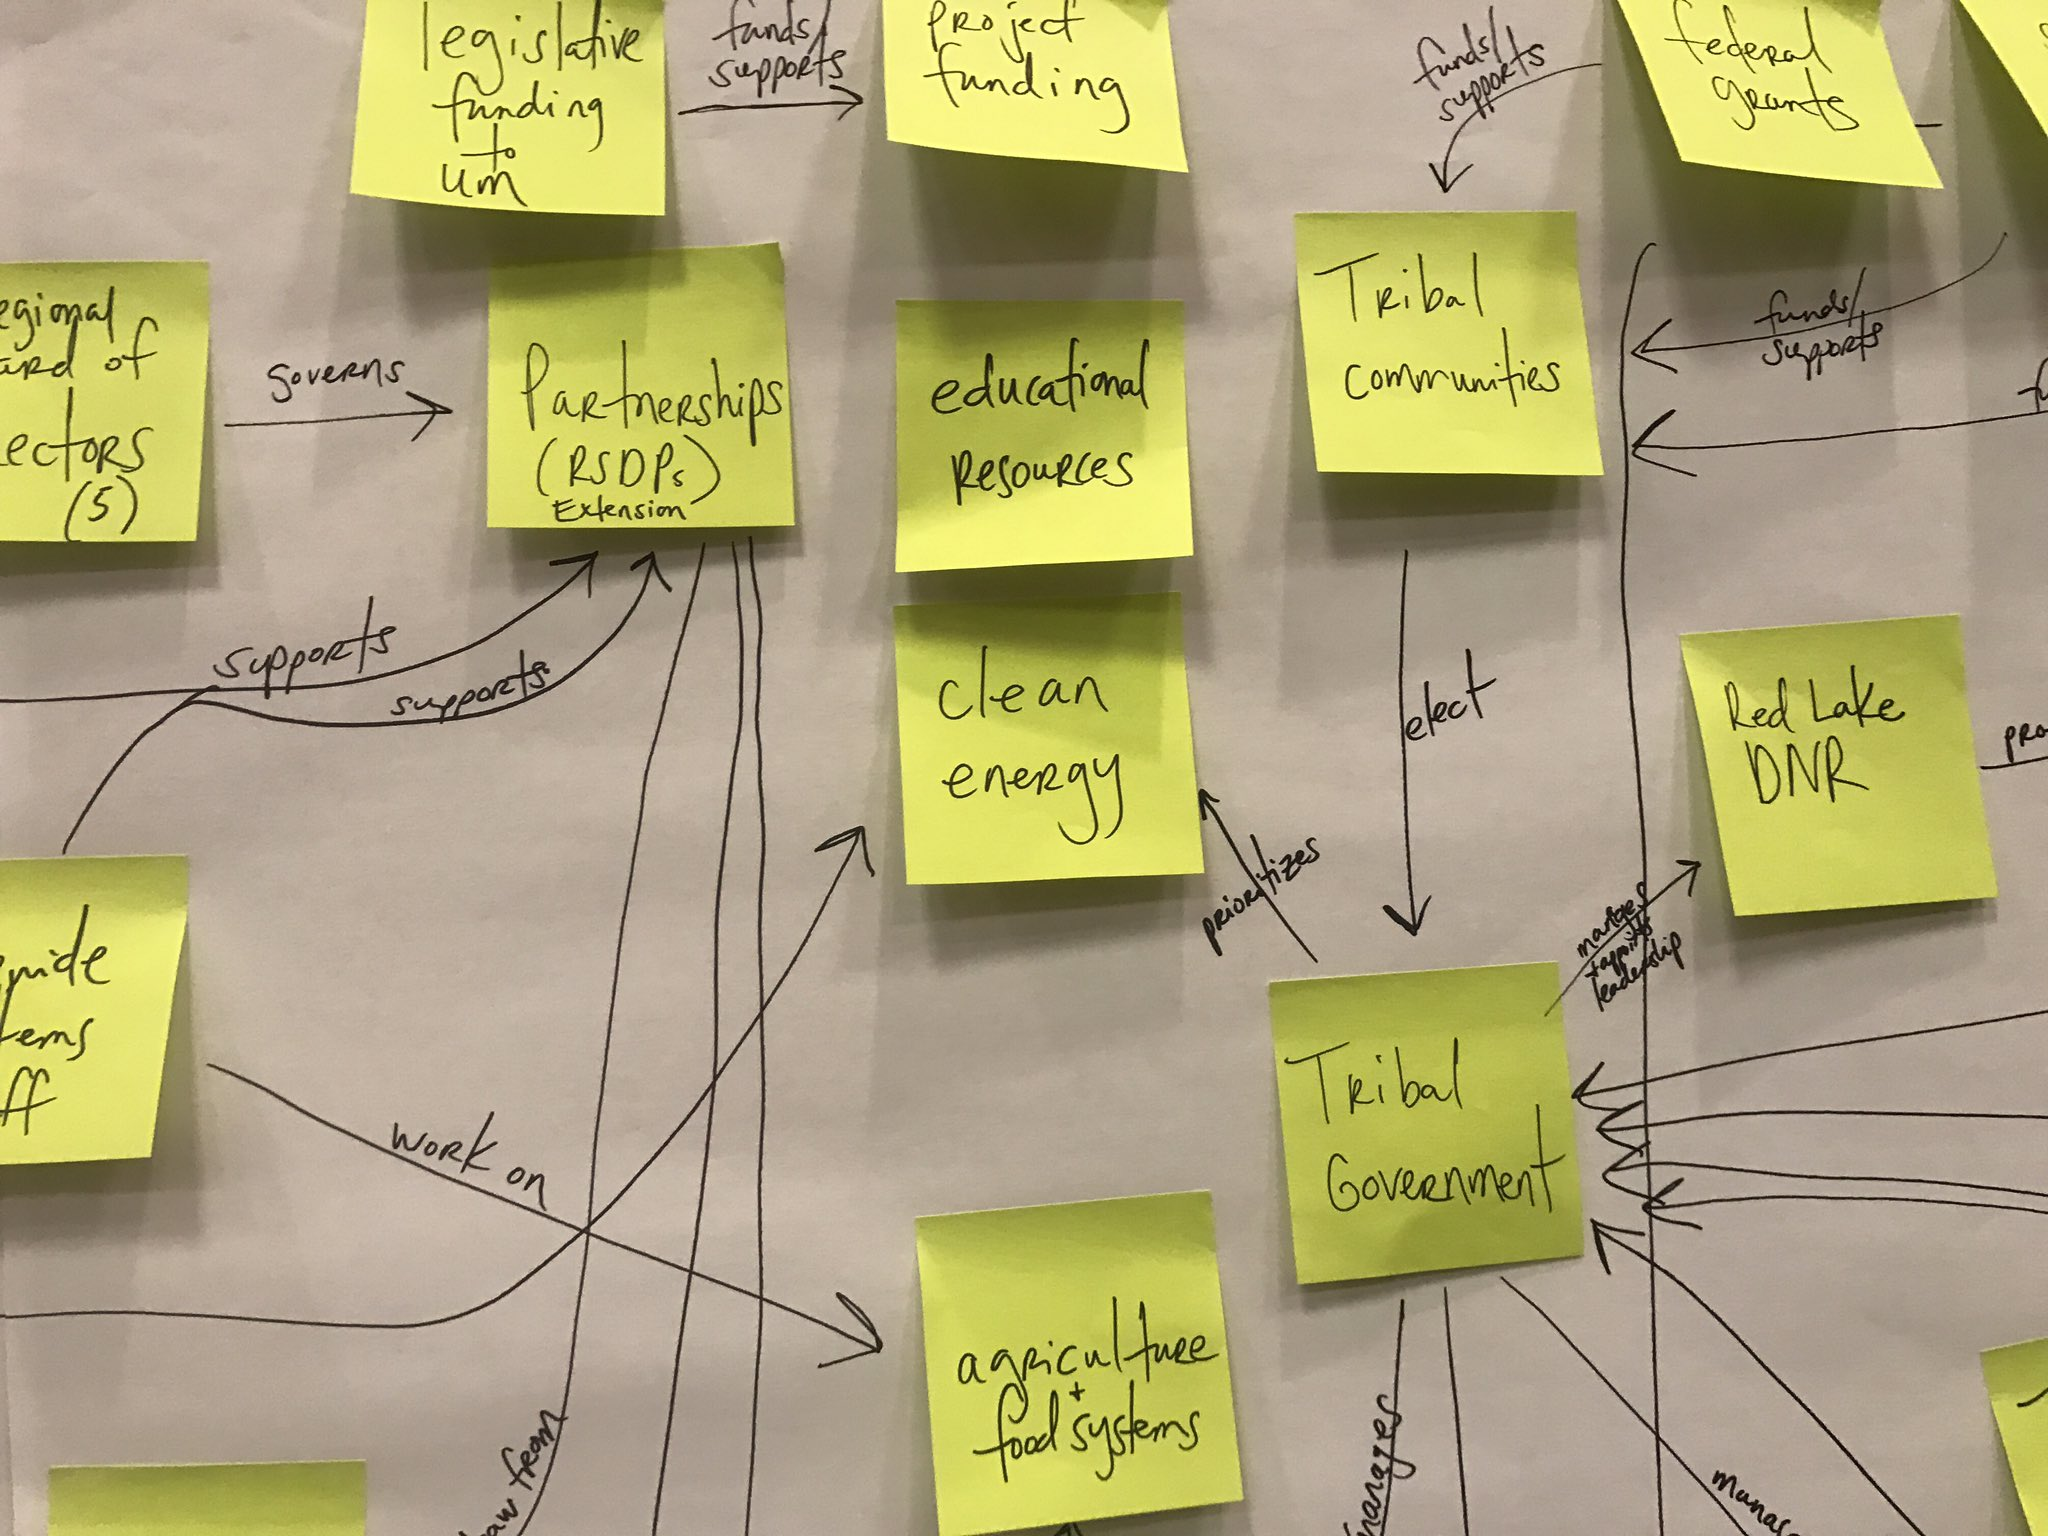 Concept Mapping at #DIcorps17: What's a Designathon without Post-its? In process, MN team (@RSDPMN, CSBR MN, Red Lake Nation) https://t.co/N5uHq7iuxO